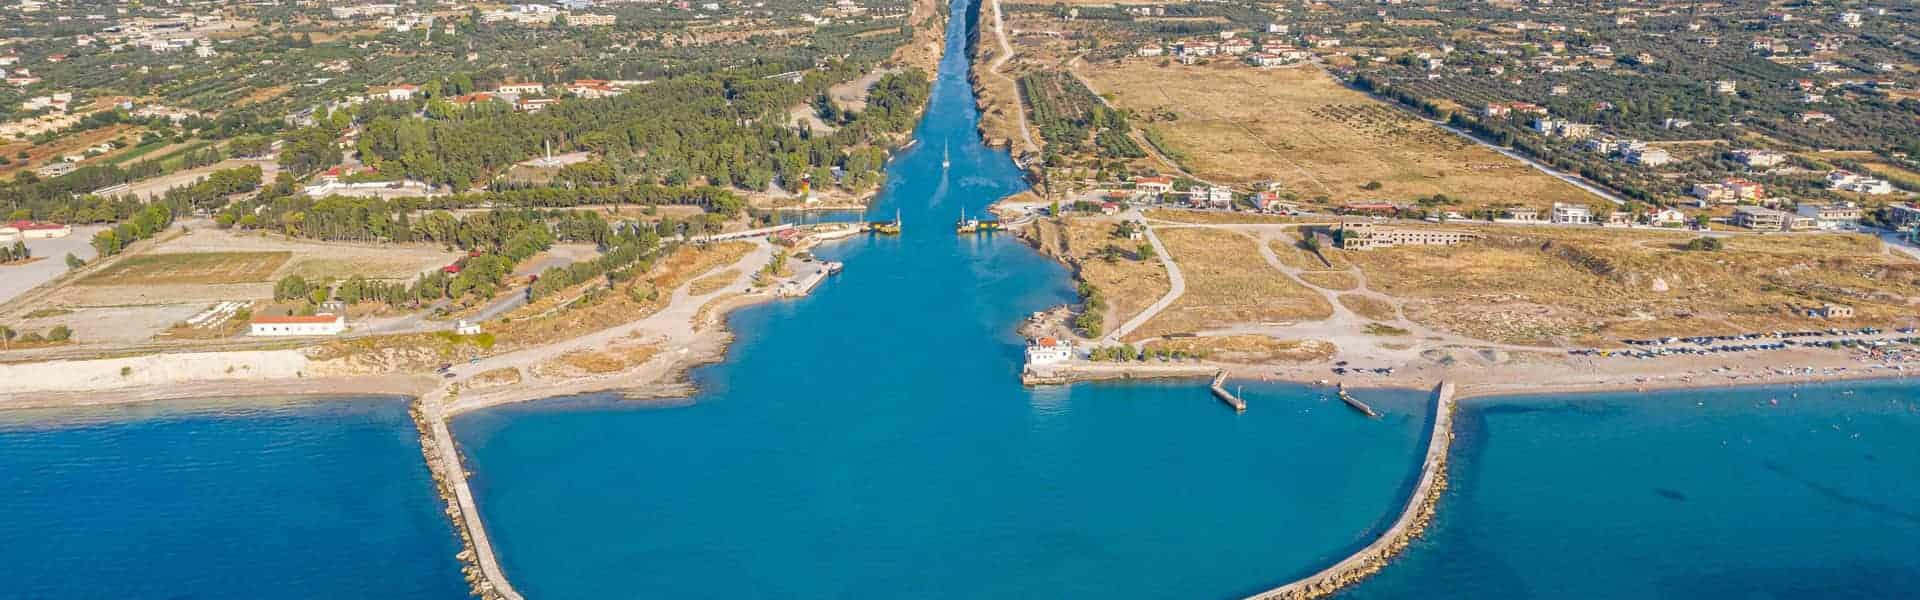 Isthmus the canal of Corinth